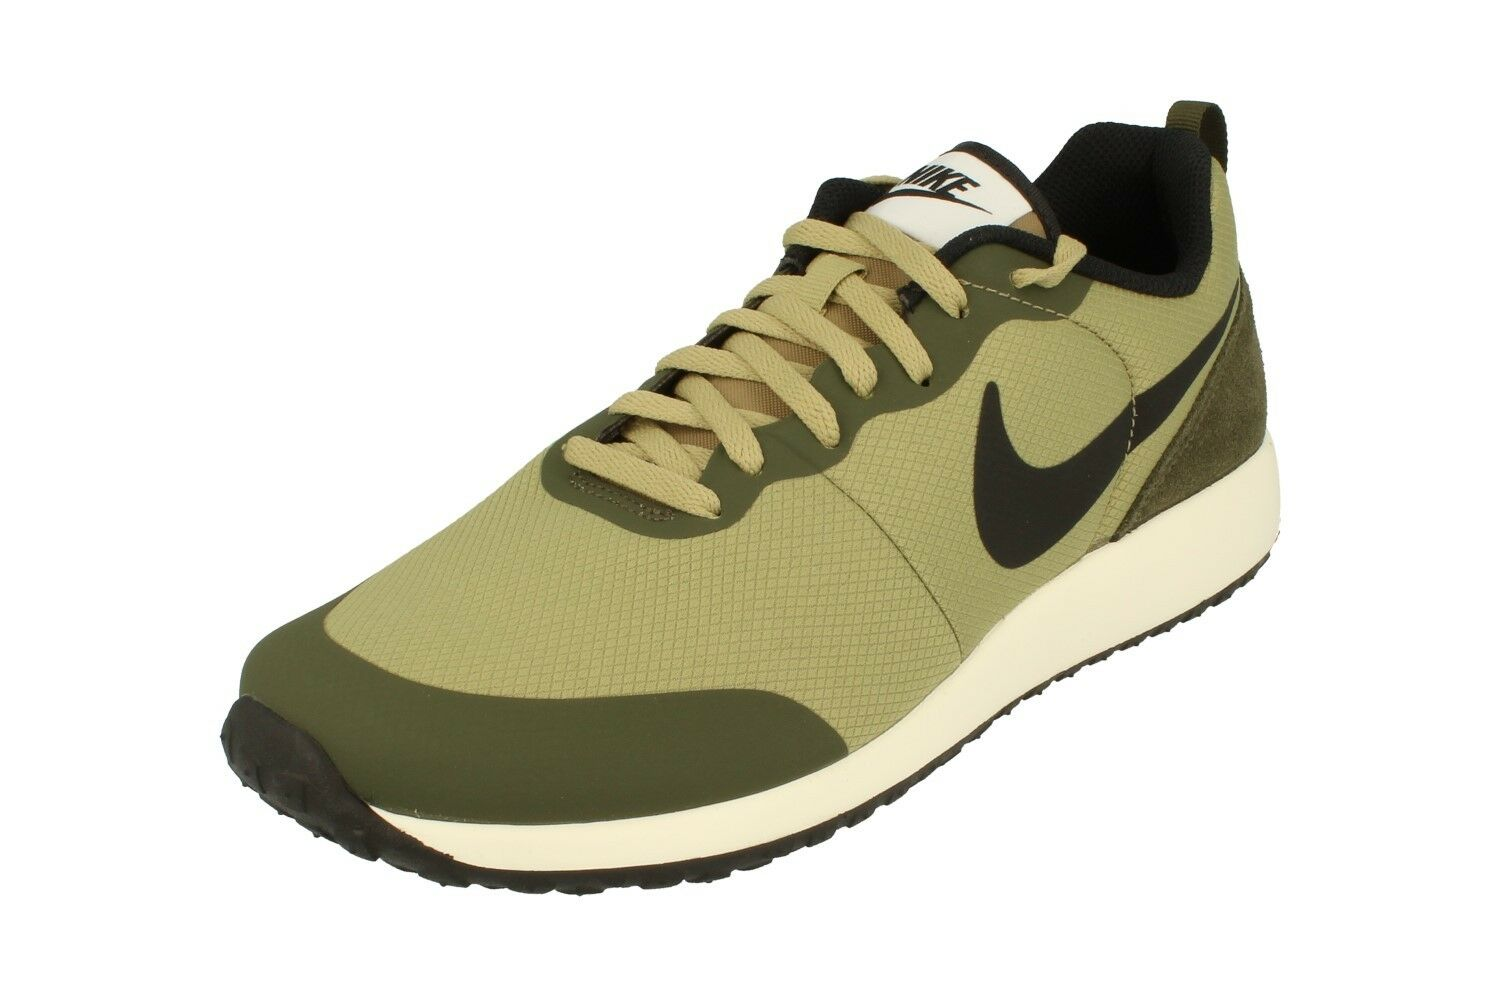 Nike Elite Shinsen Mens Trainers 801780 200 Sneakers Shoes